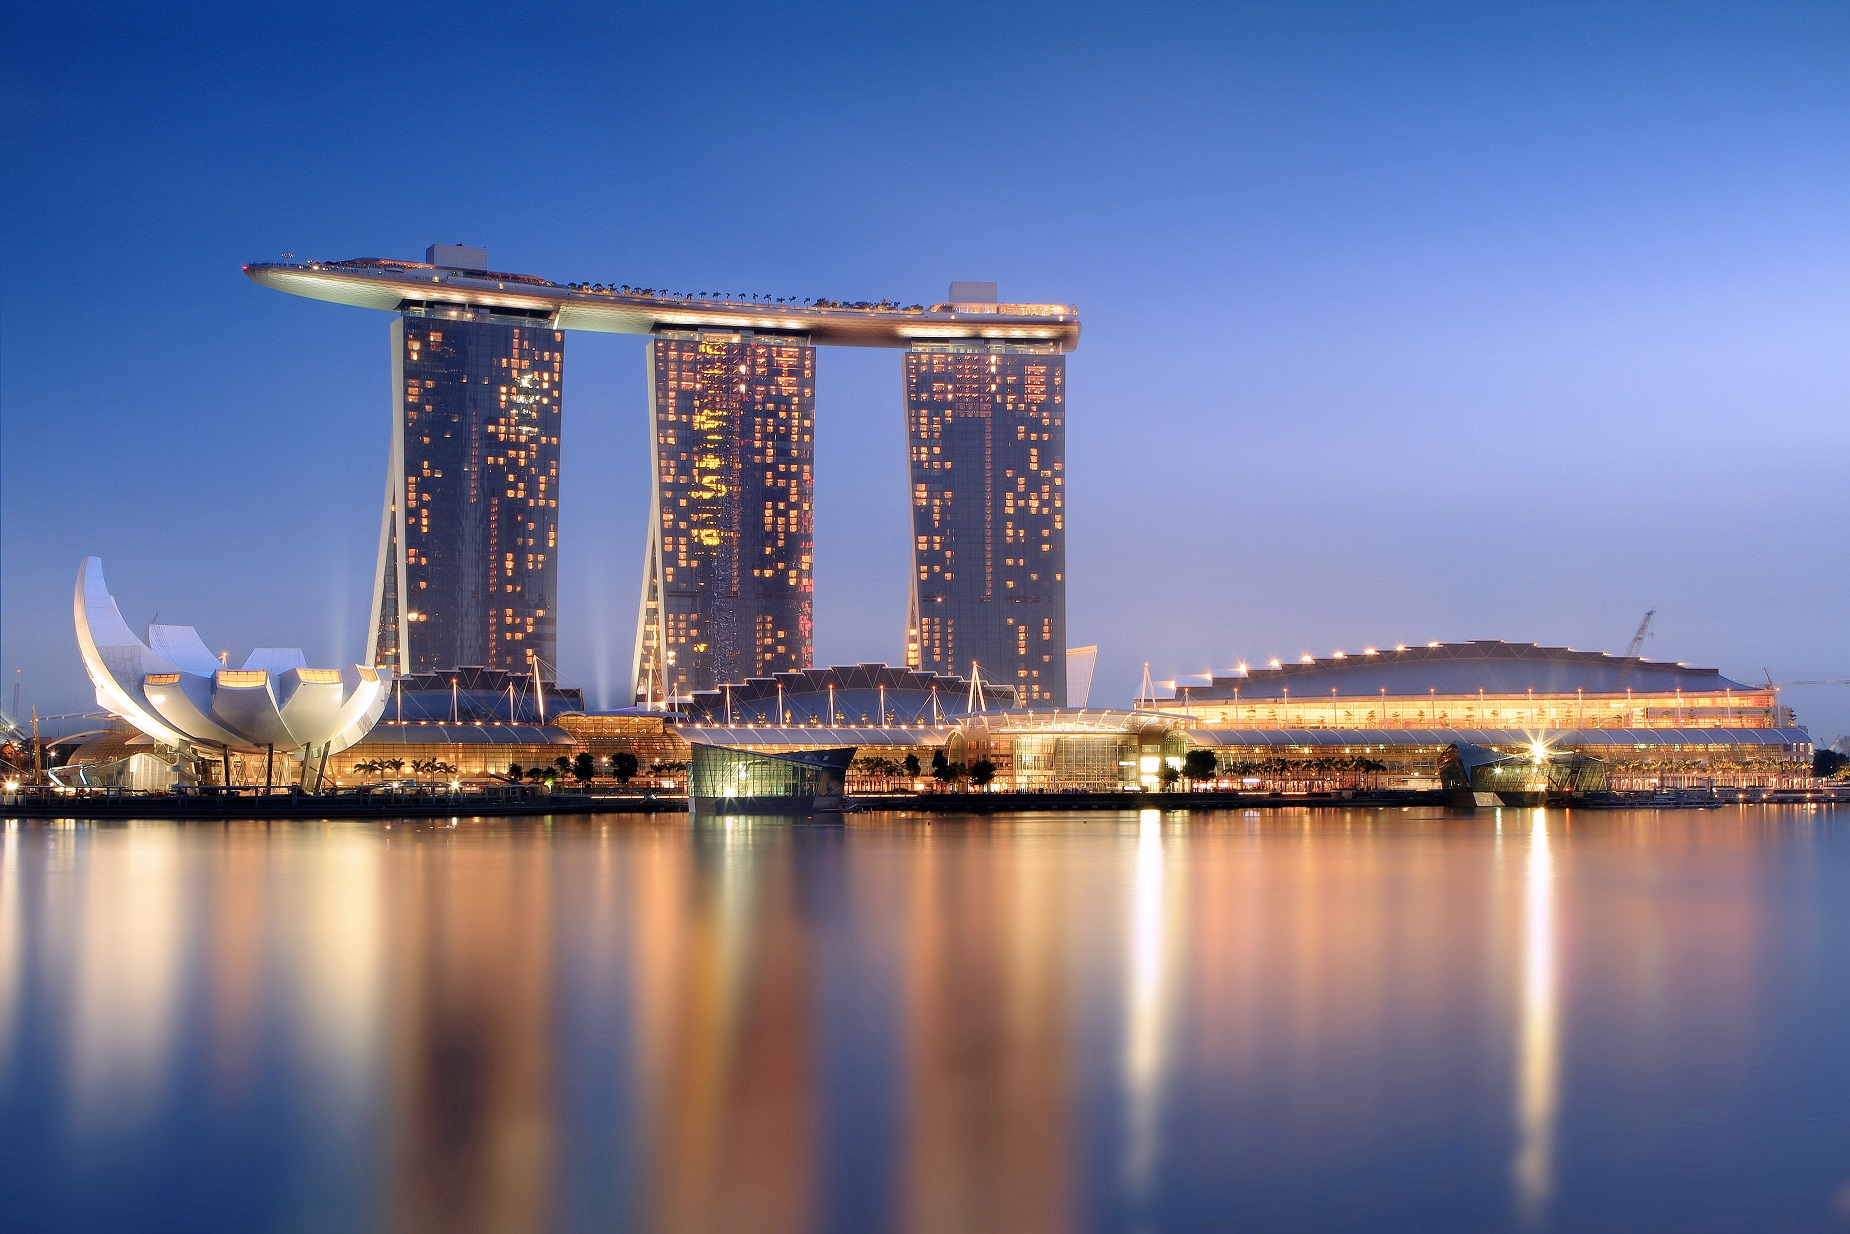 Marina_Bay_Sands_in_the_evening_-_20101120